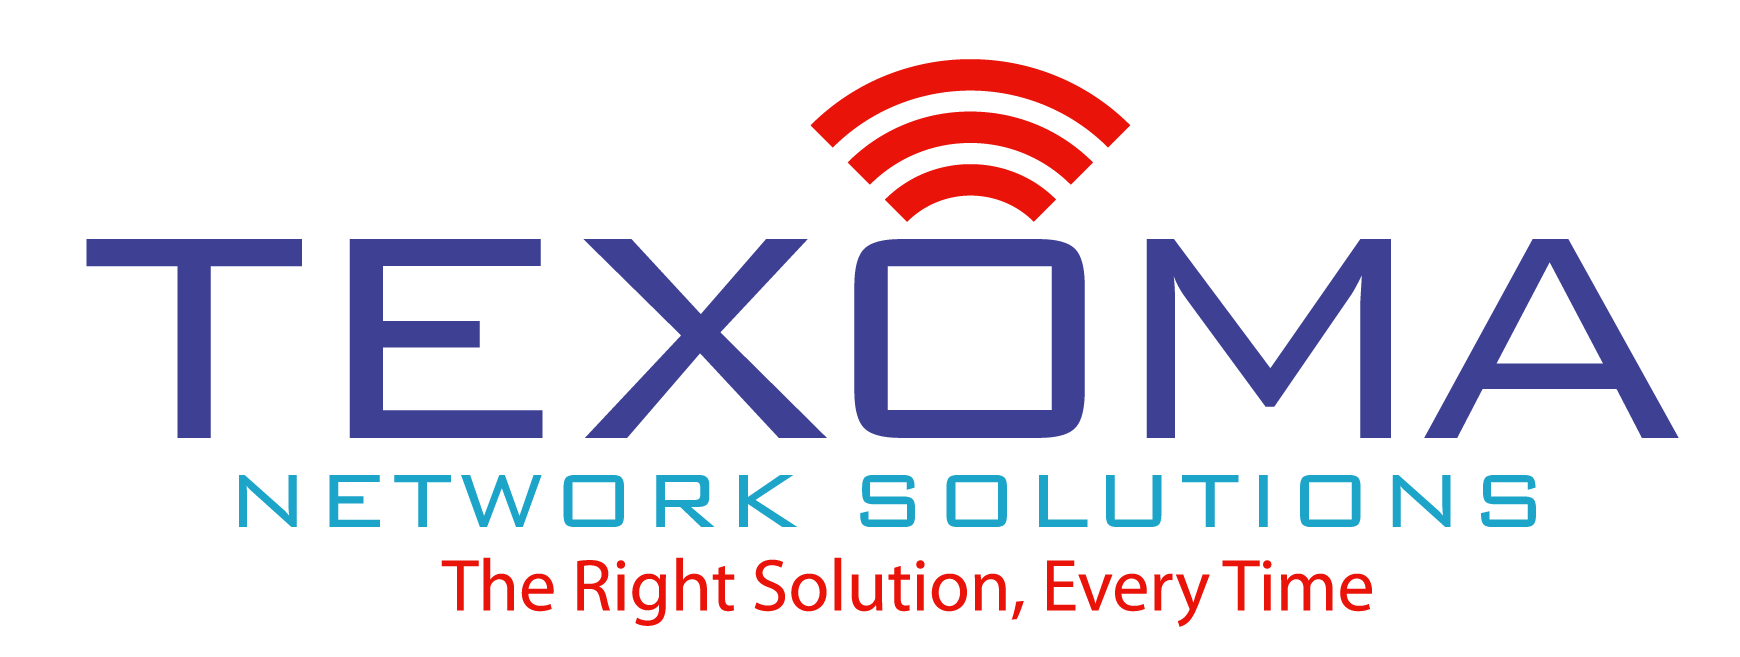 Texoma Network Solutions